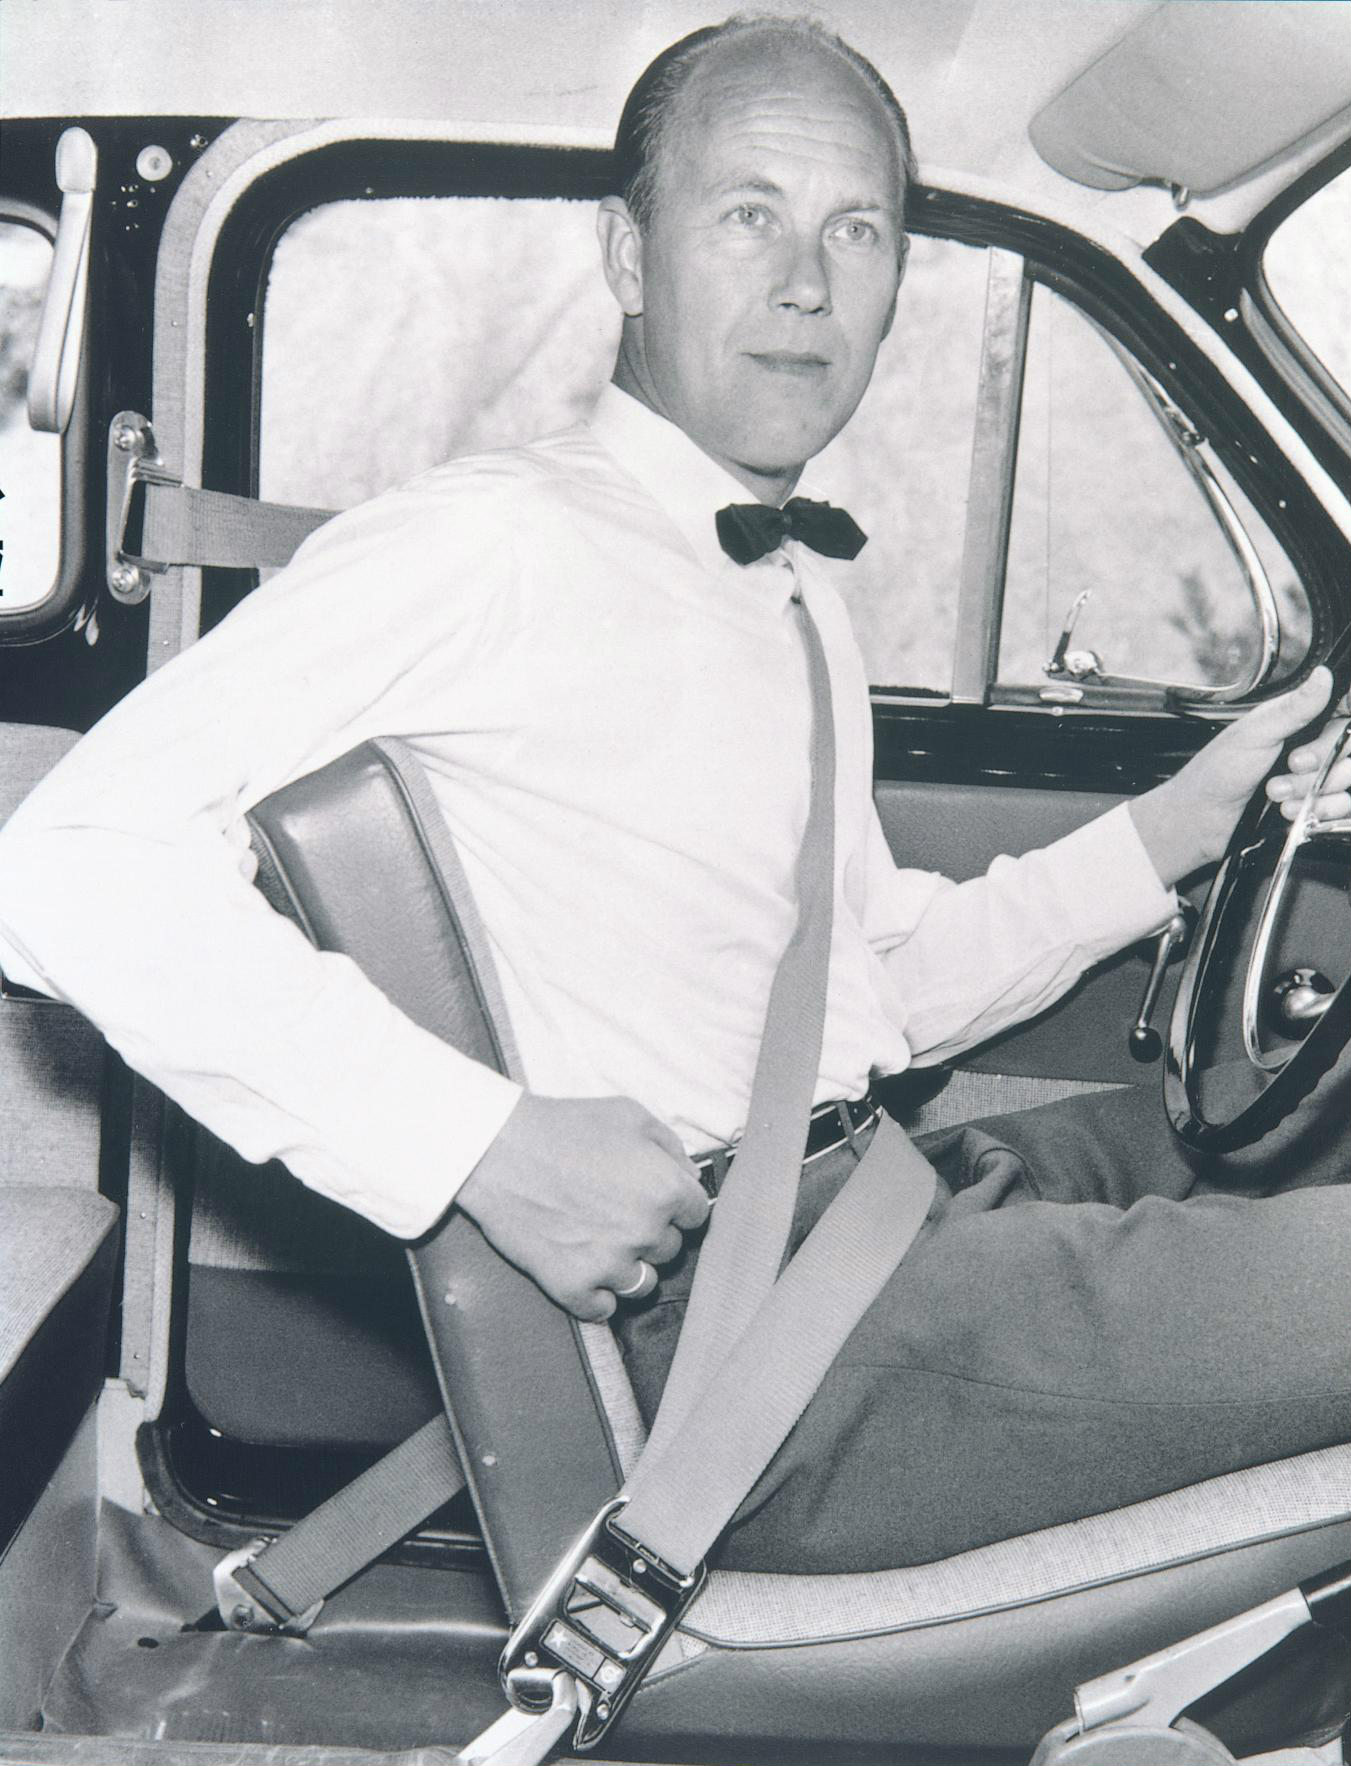 Nils Bohlin invented the three-point seatbelt